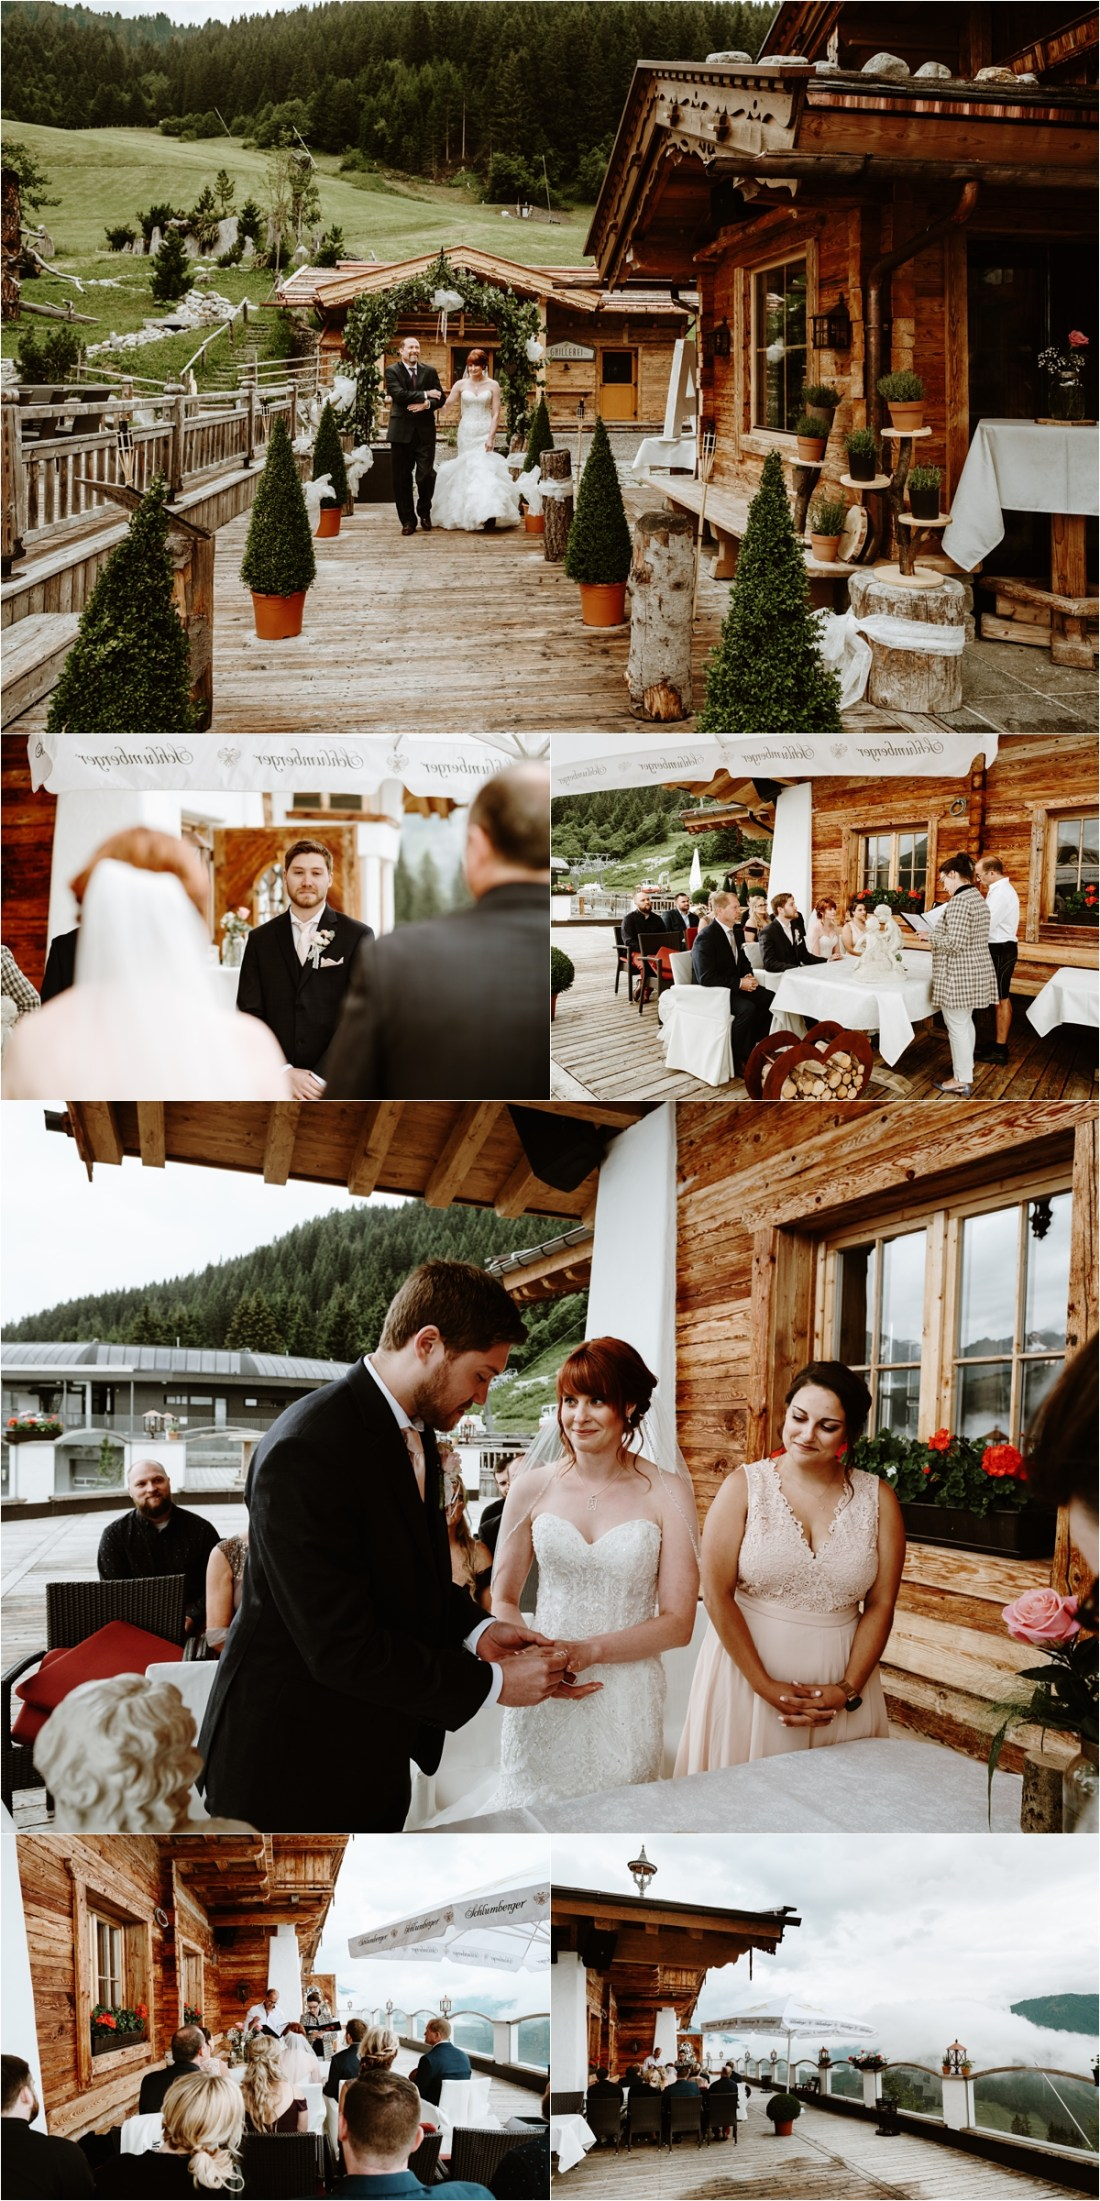 An intimate wedding ceremony on the terrace of the Rössl Alm, a mountain chalet in Gerlos Austria. Photos by Wild Connections Photography